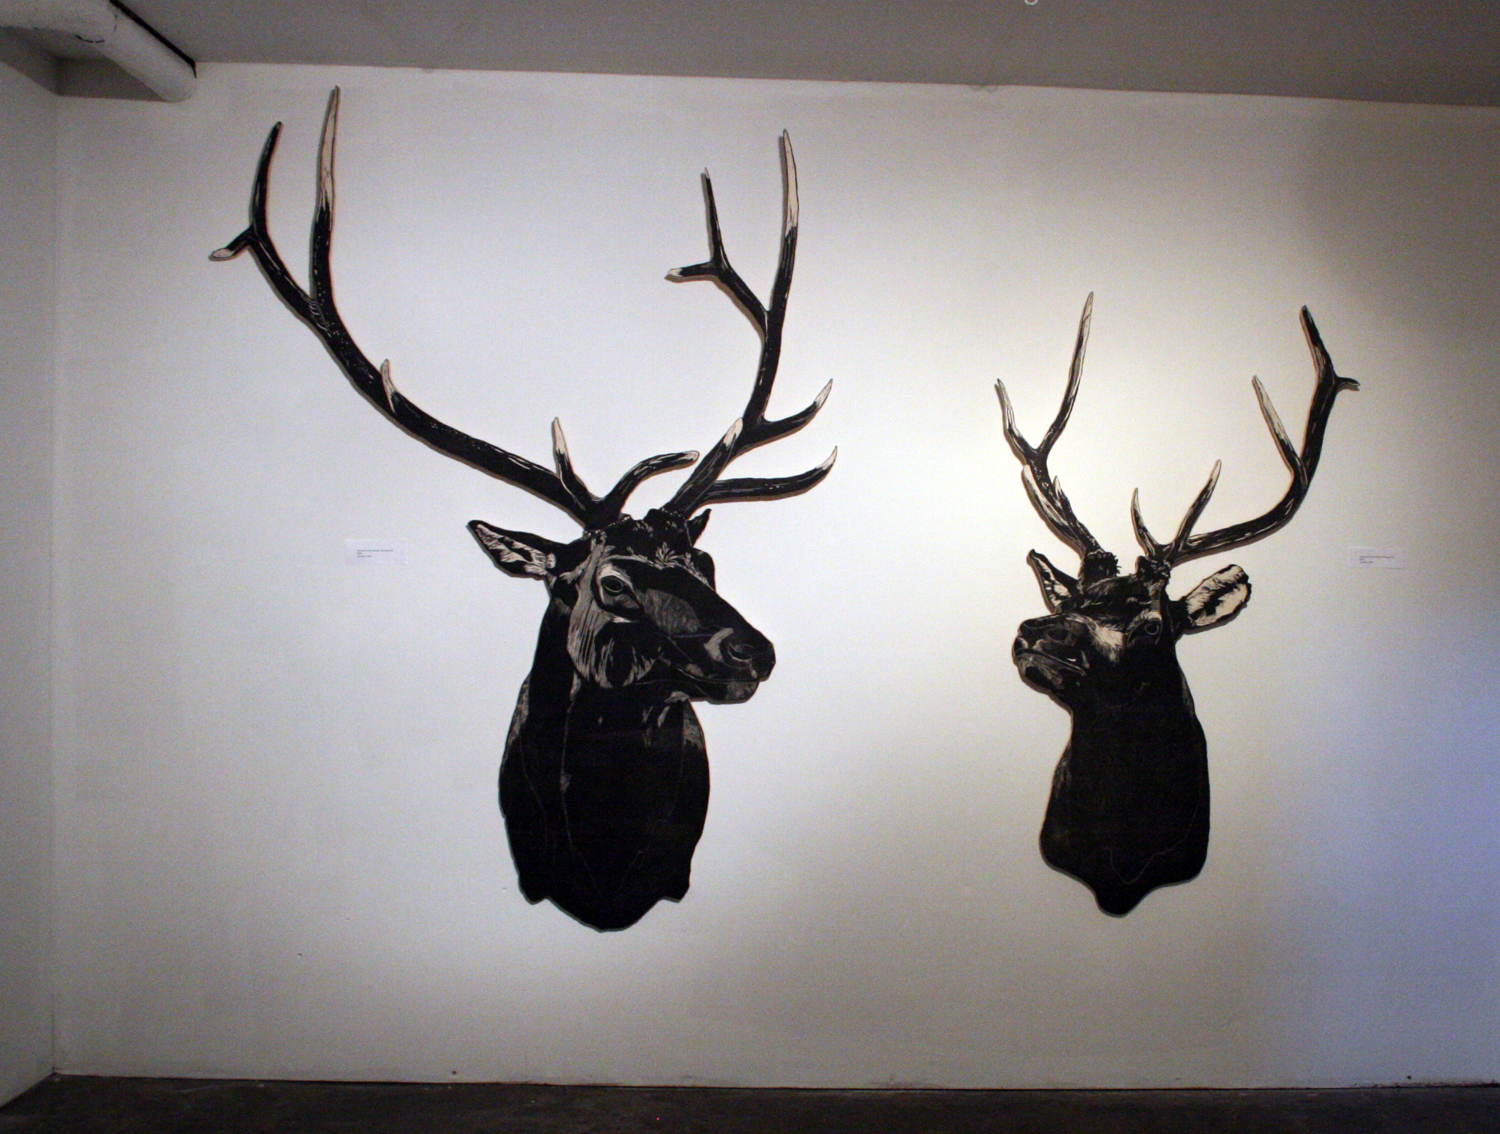 Mike's Elk Heads by Nic Annette Miller